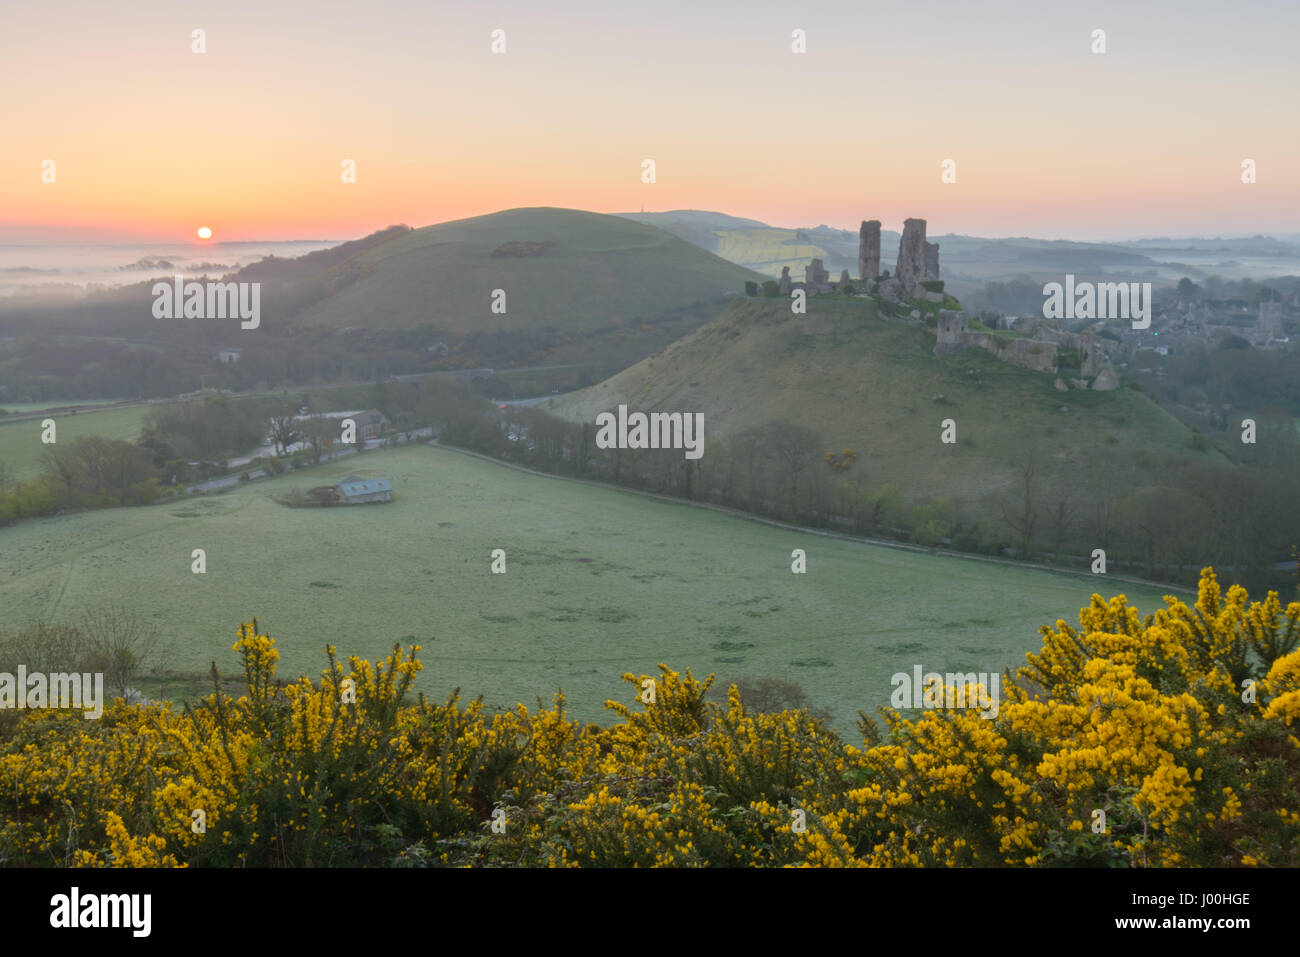 Corfe Castle, Dorset, UK. 8th April 2017. Glorious misty crisp sunrise over the Isle of Purbeck and the iconic, - Stock Image